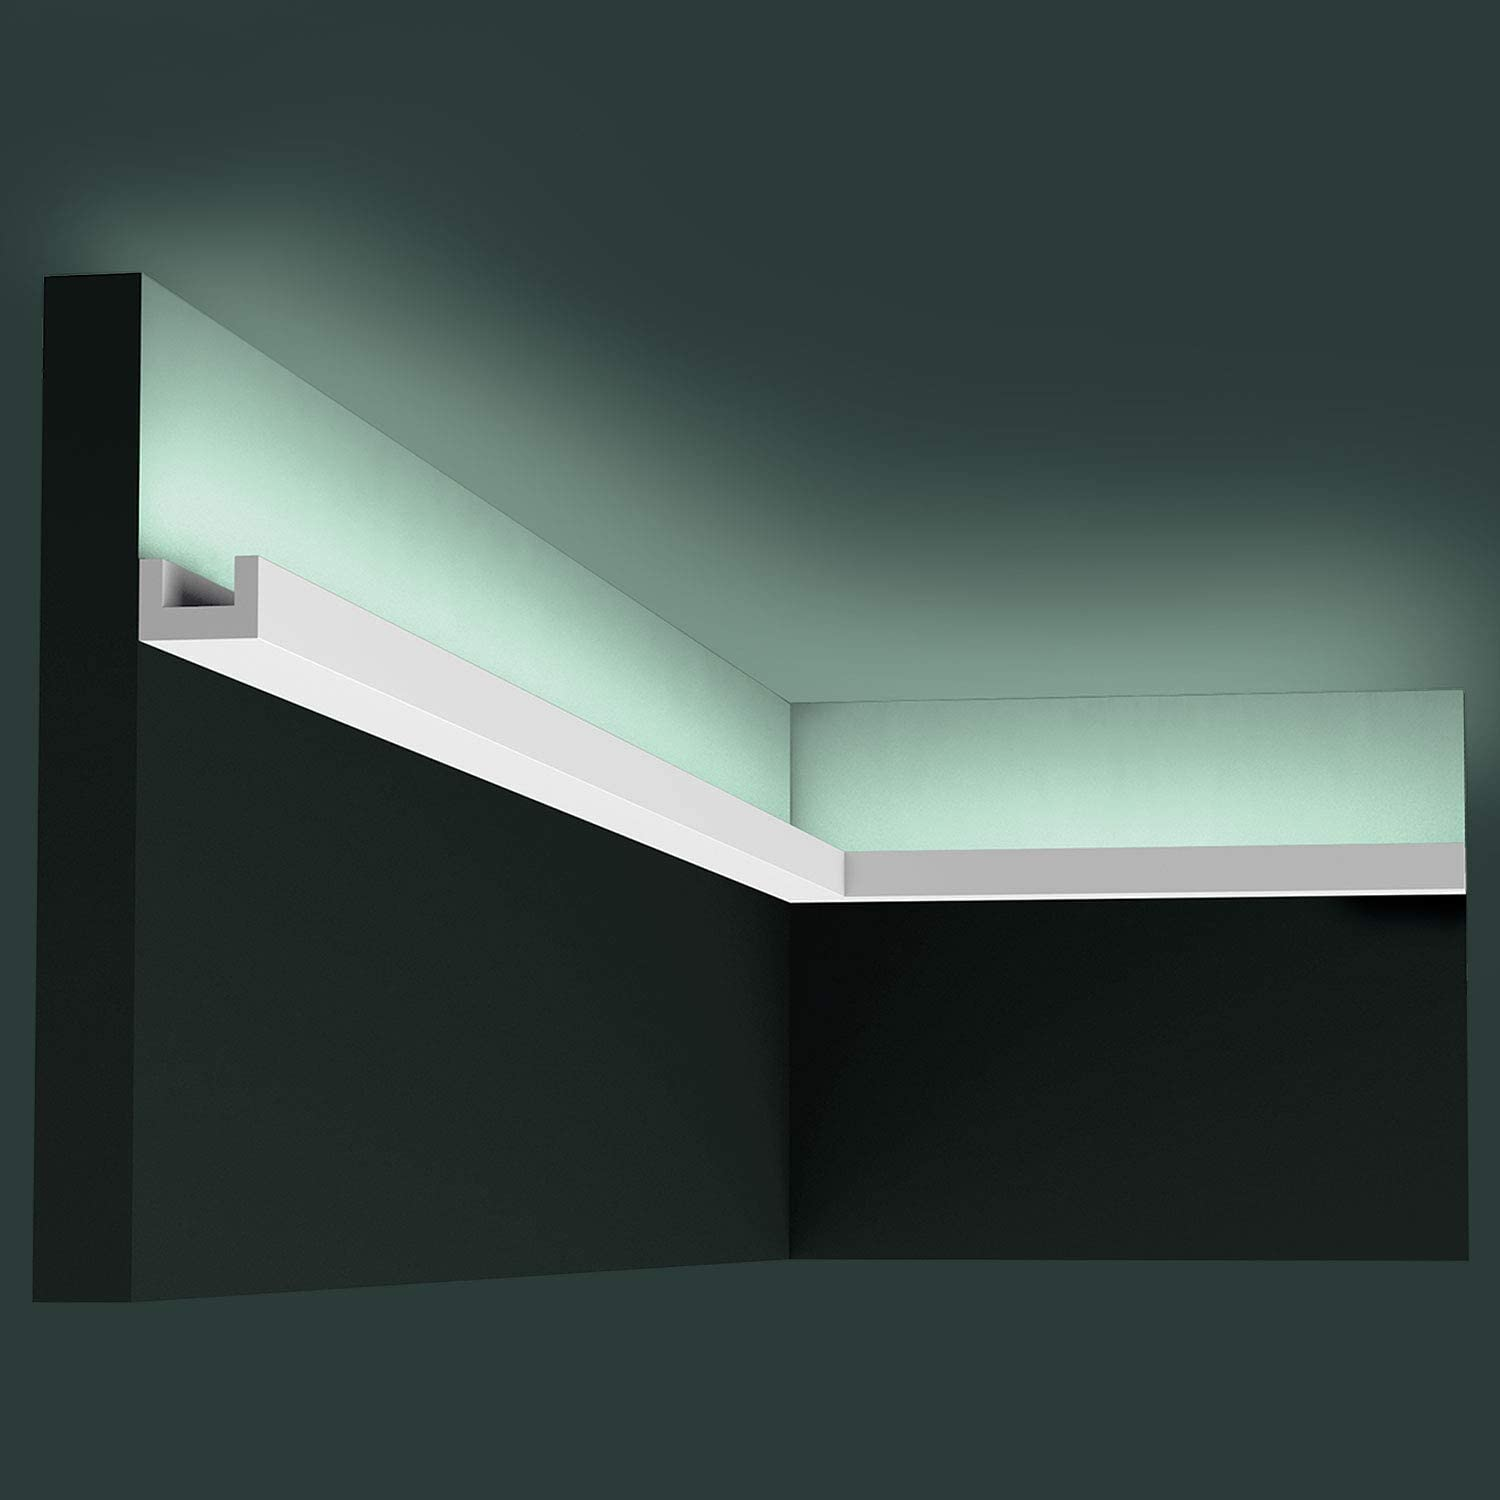 Orac Decor CX190 | High Impact Polystyrene Crown Moulding | Primed White | 1-1/8in Face x 78in Long